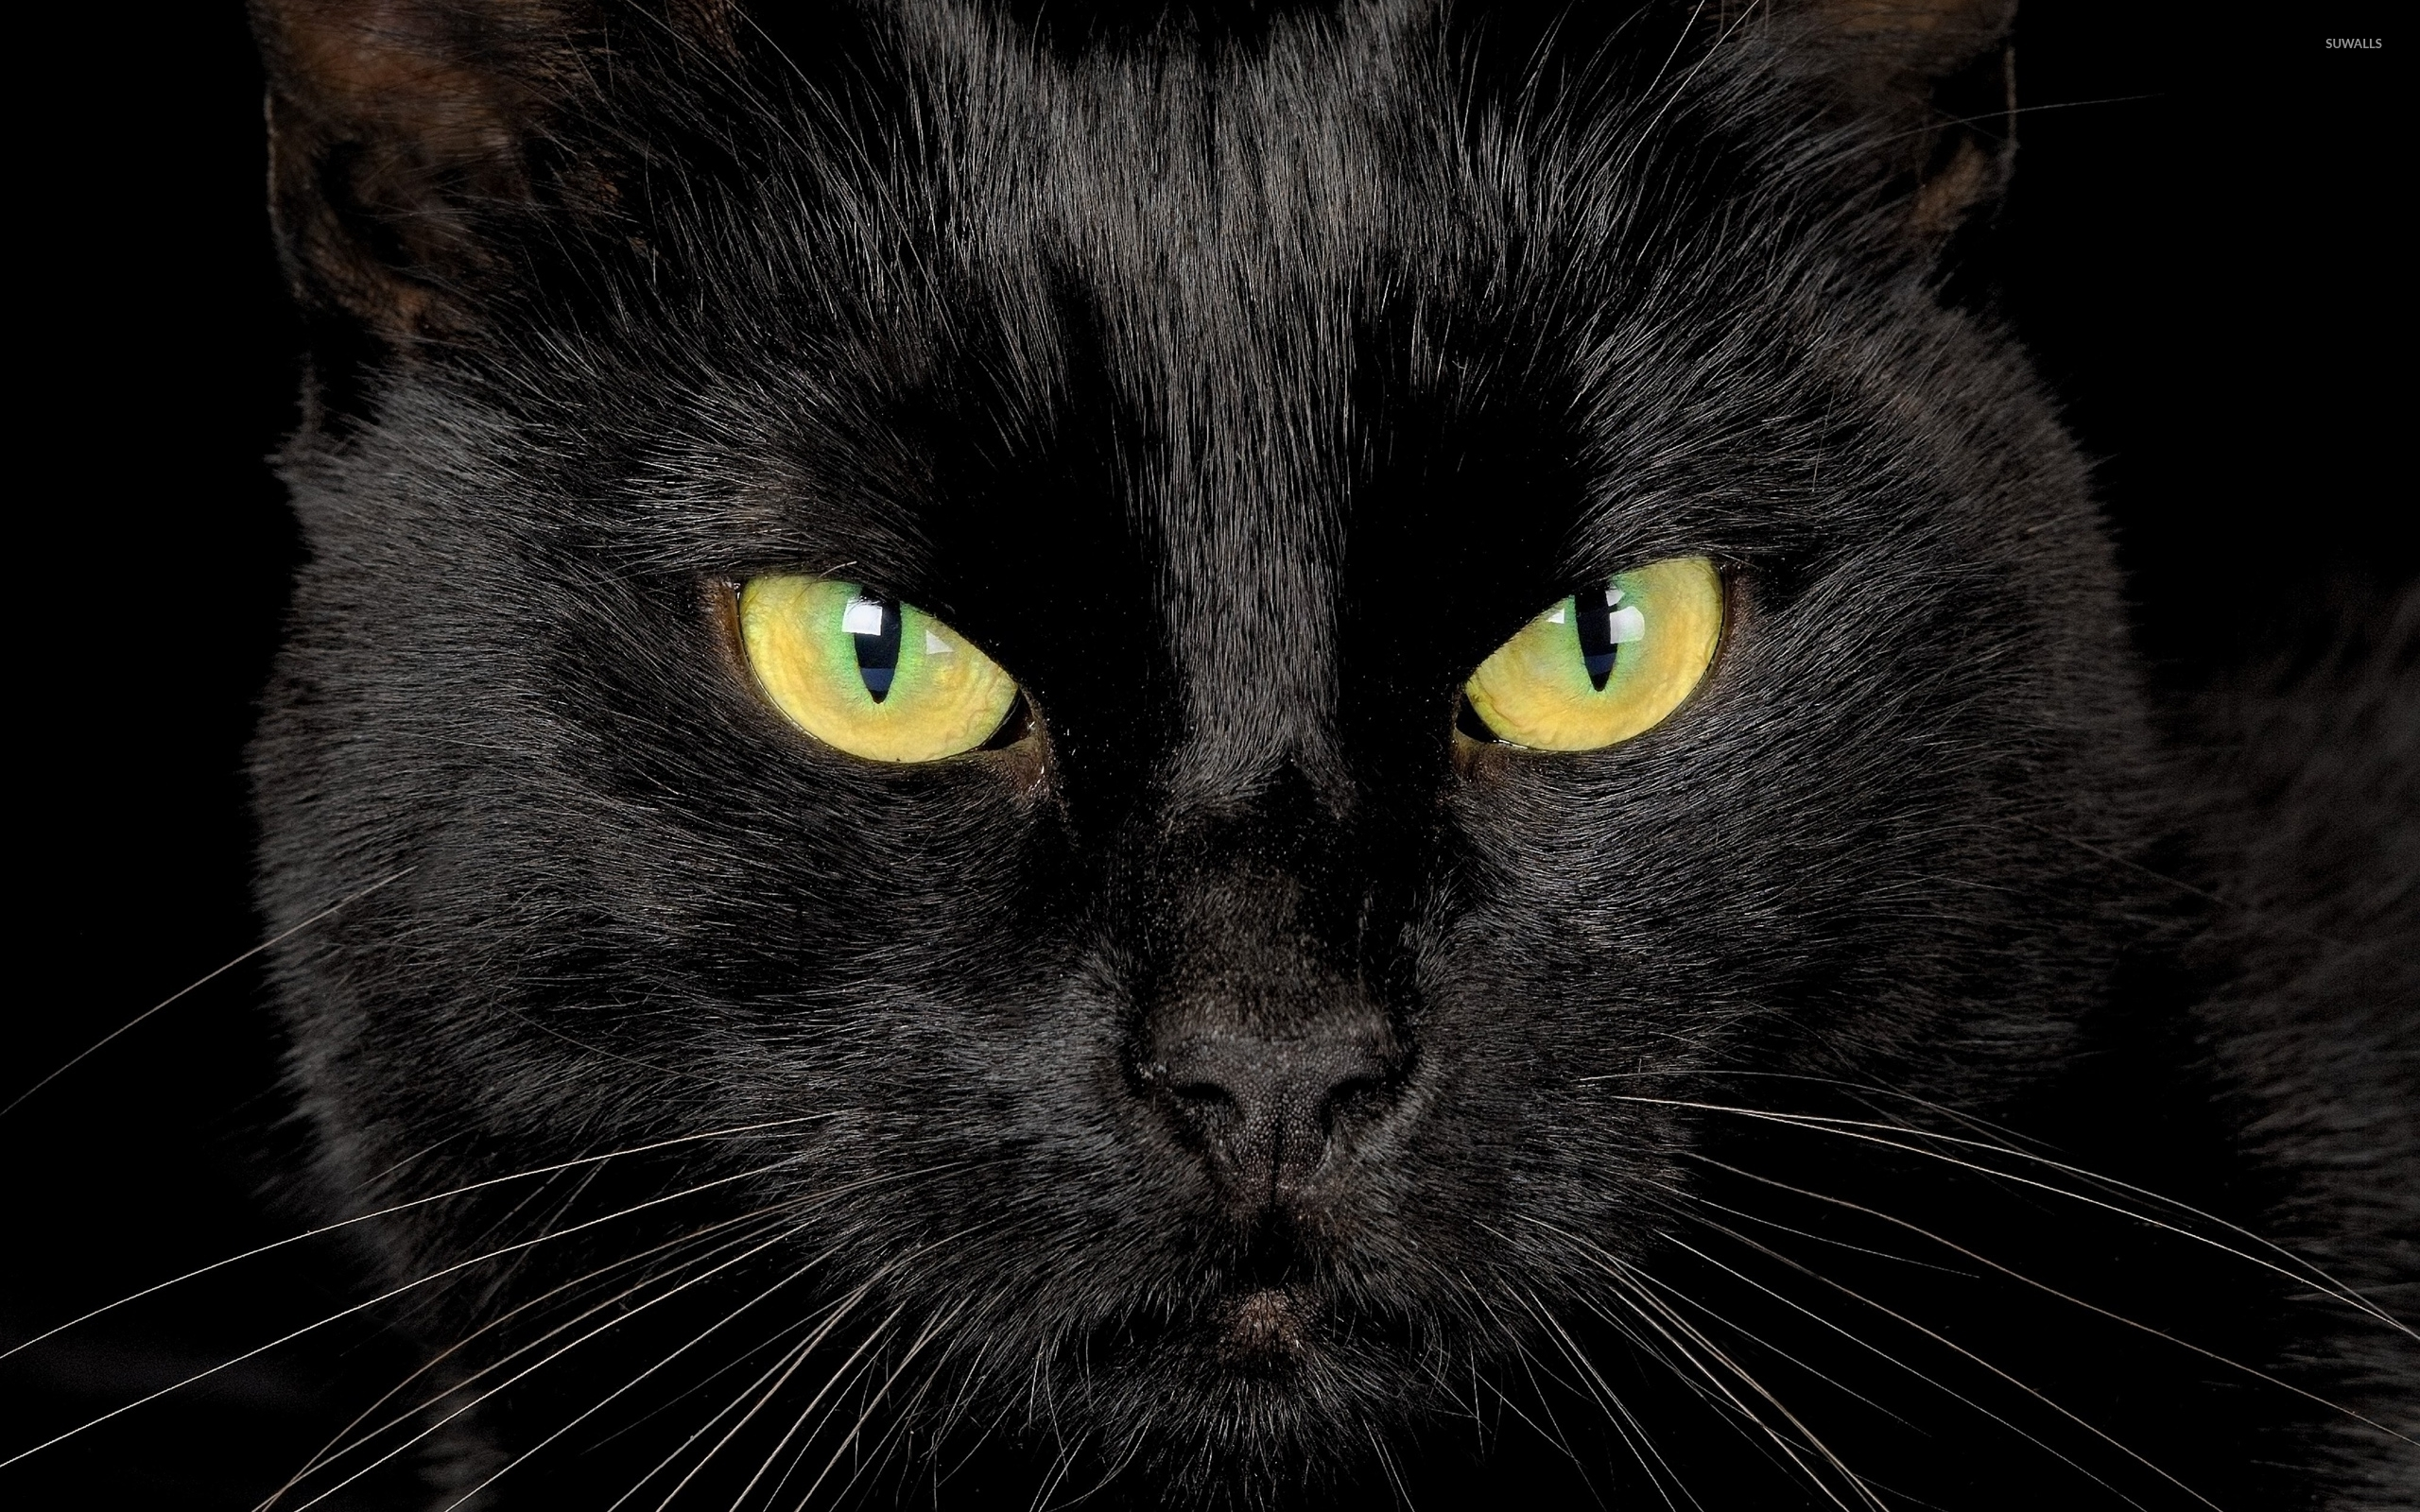 Fantastic Wallpaper Marvel Black Cat - black-cat-with-yellow-eyes-47299-2560x1600  Graphic_976567.jpg